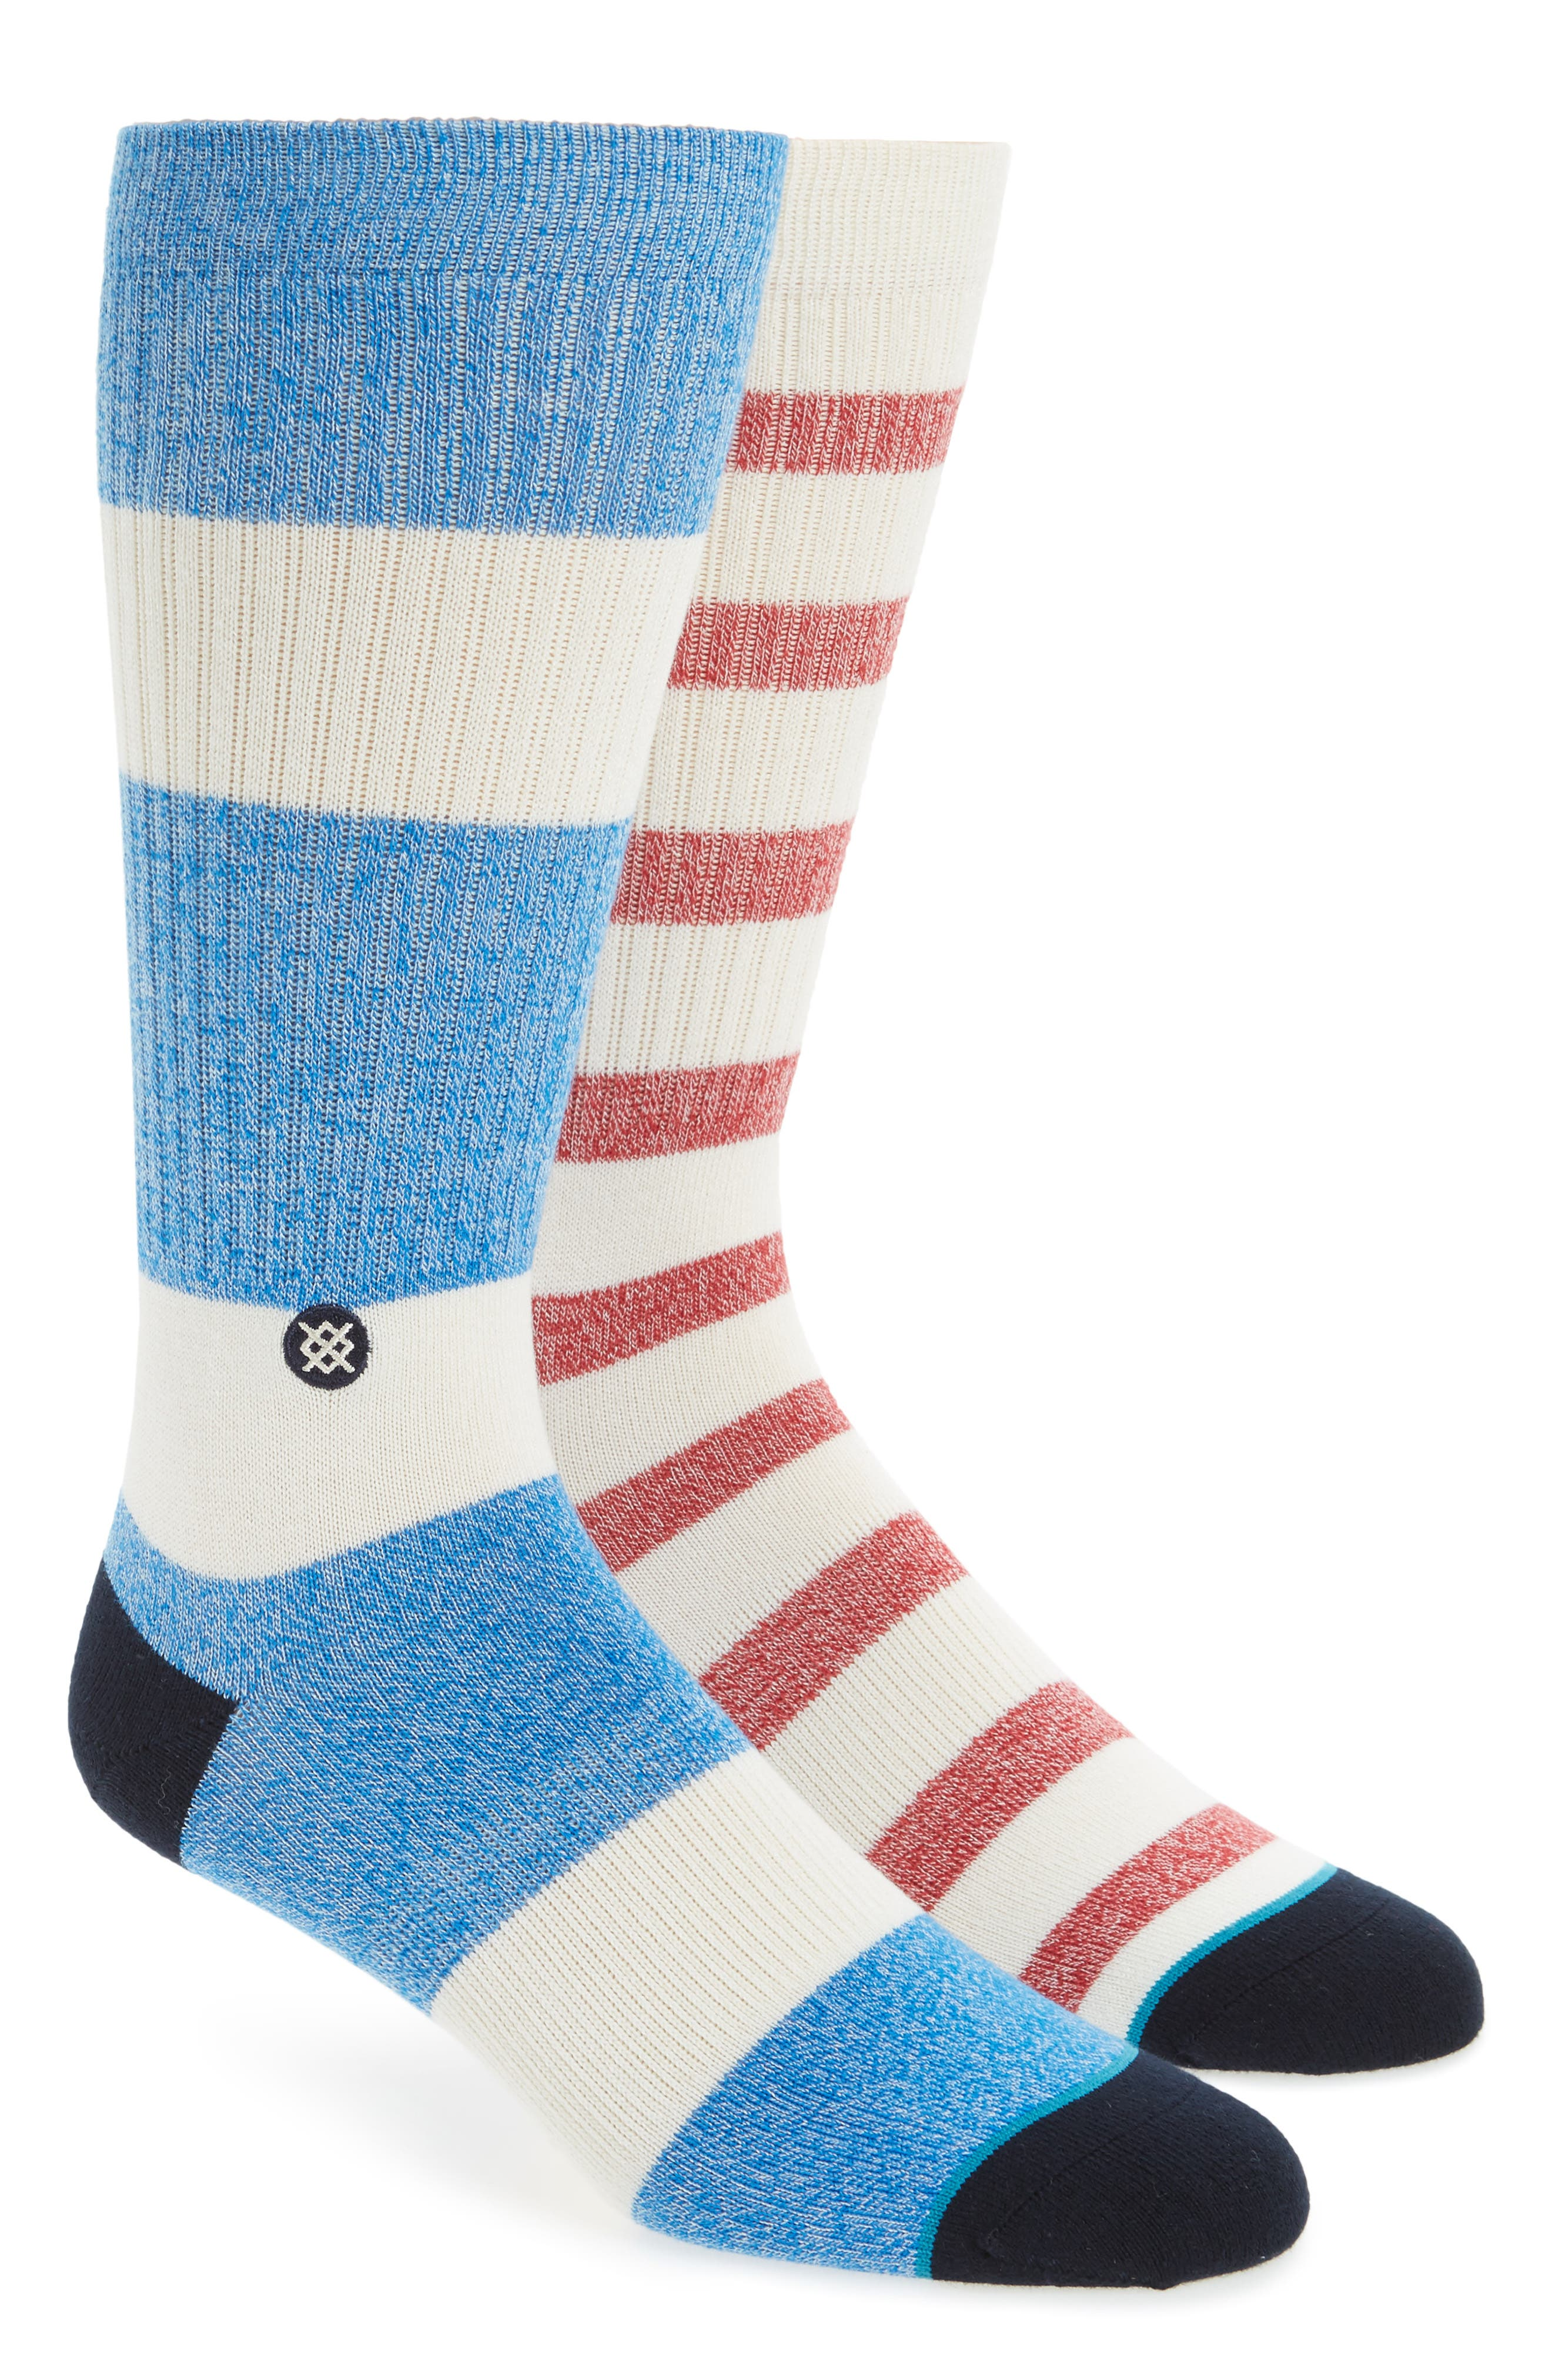 Starboard Mismatched Crew Socks,                             Main thumbnail 1, color,